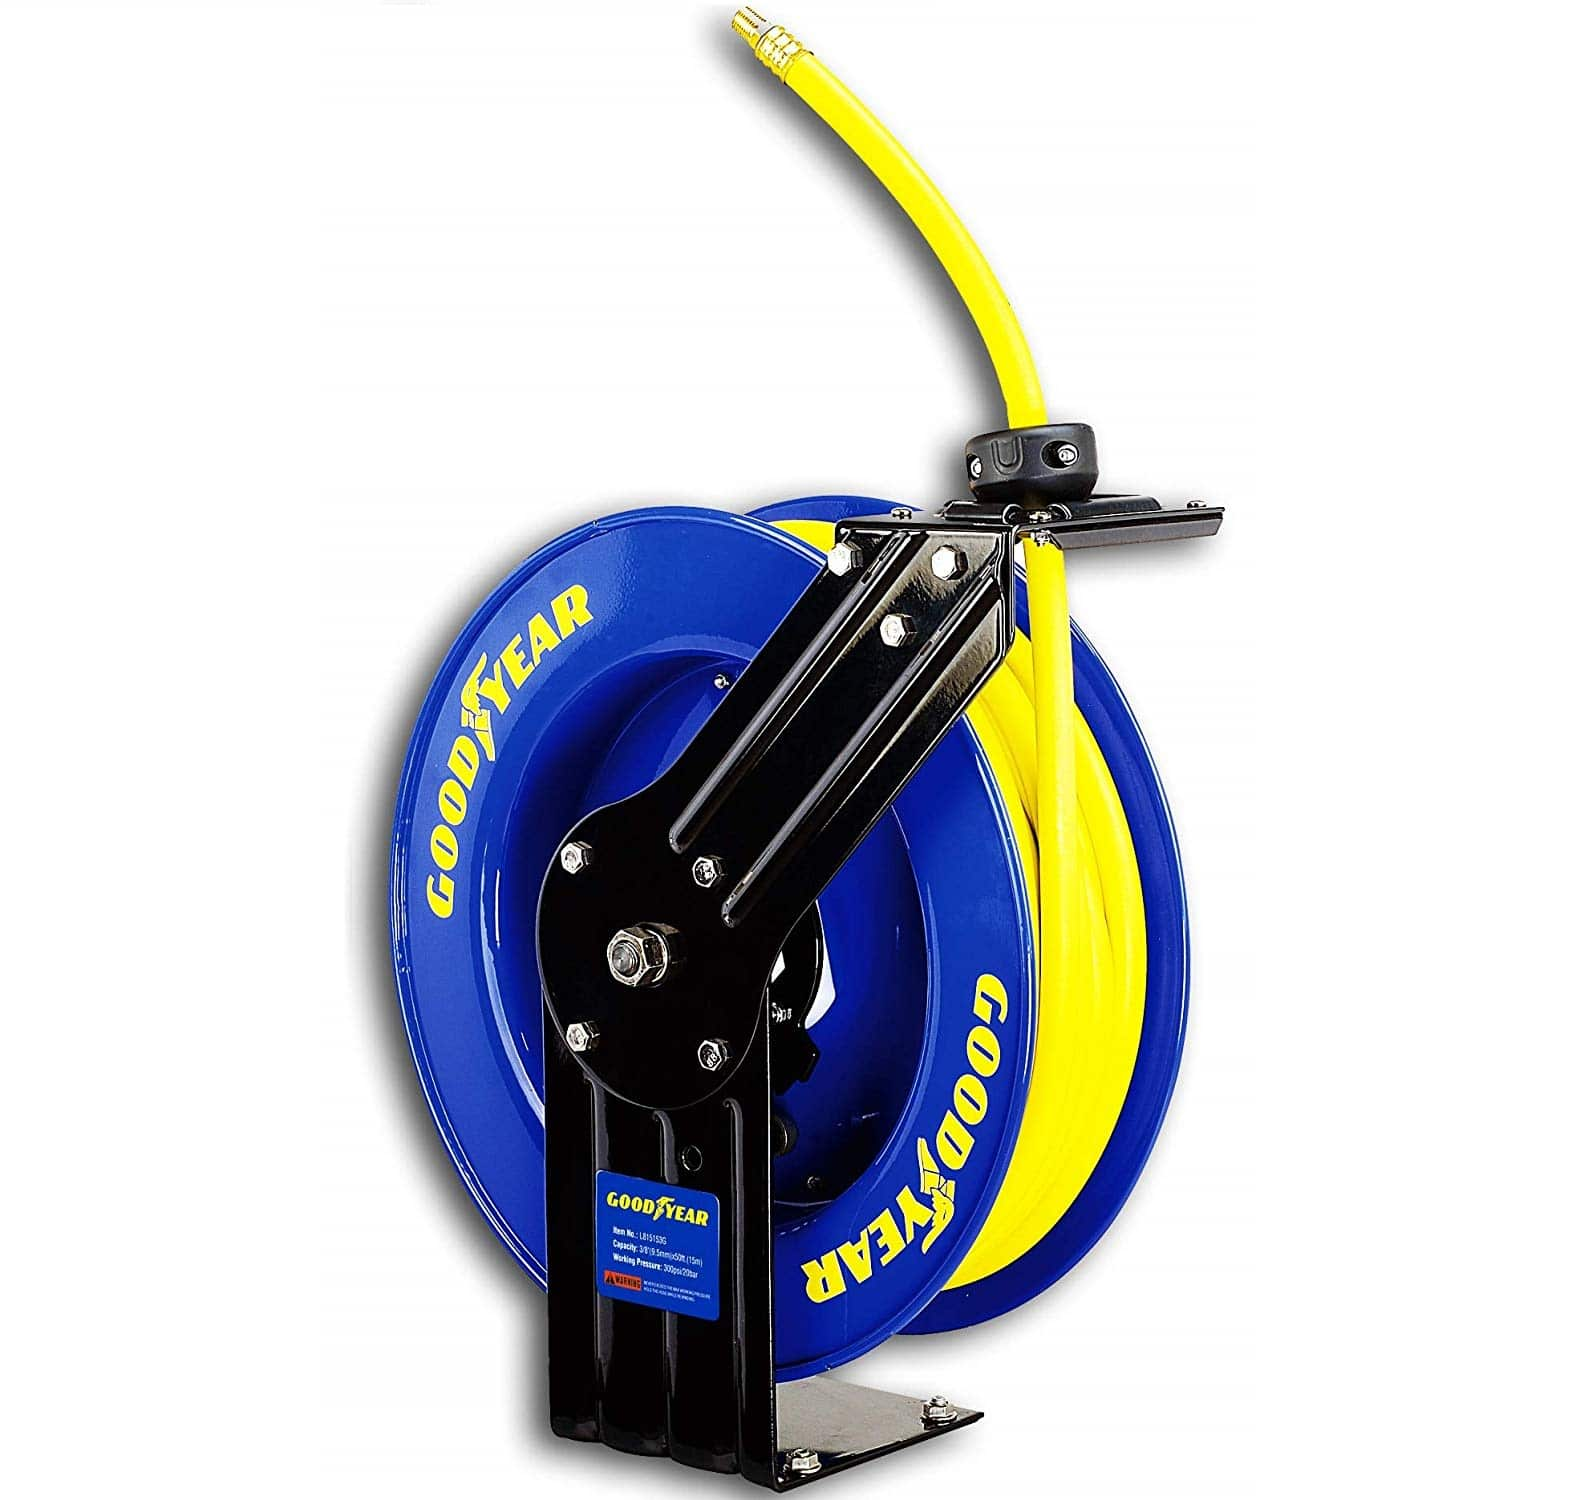 6.Goodyear L815153G Steel Retractable Air Compressor Water Hose Reel with 3 8 in. x 50 ft. Rubber Hose, Max. 300PSI